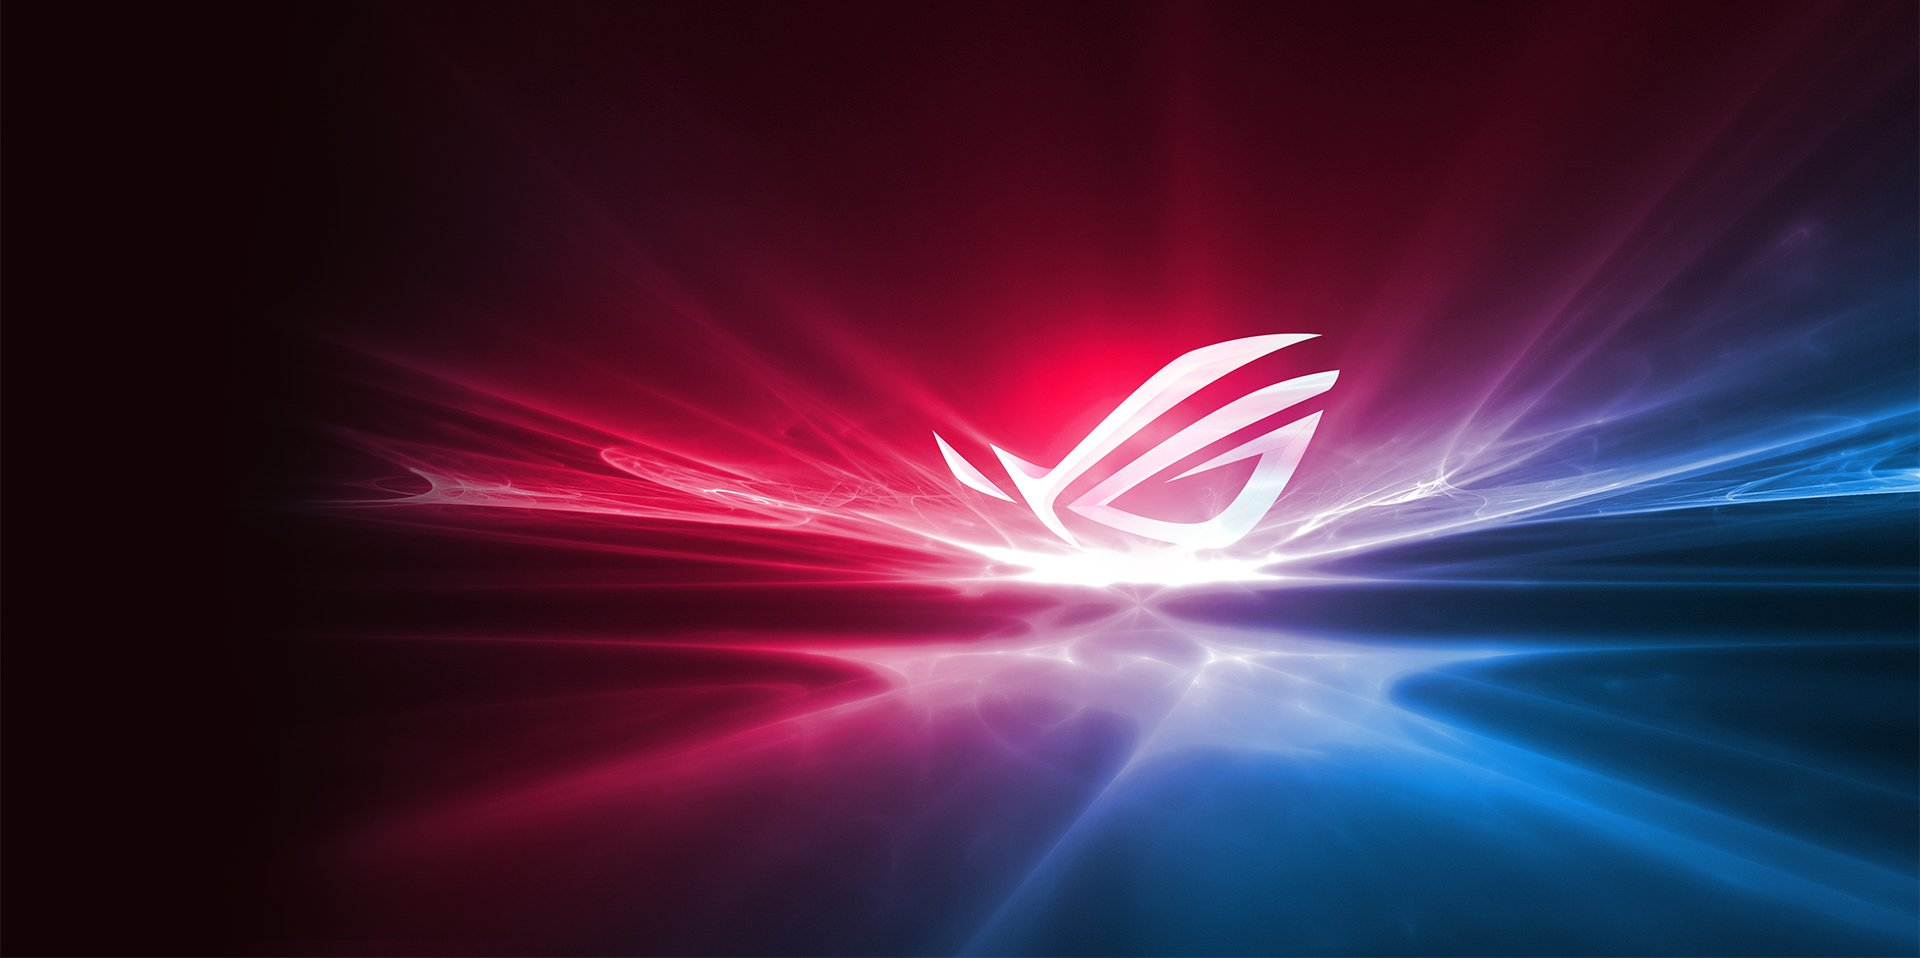 Rog global on twitter these two new rog wallpapers are - Asus x series wallpaper hd ...